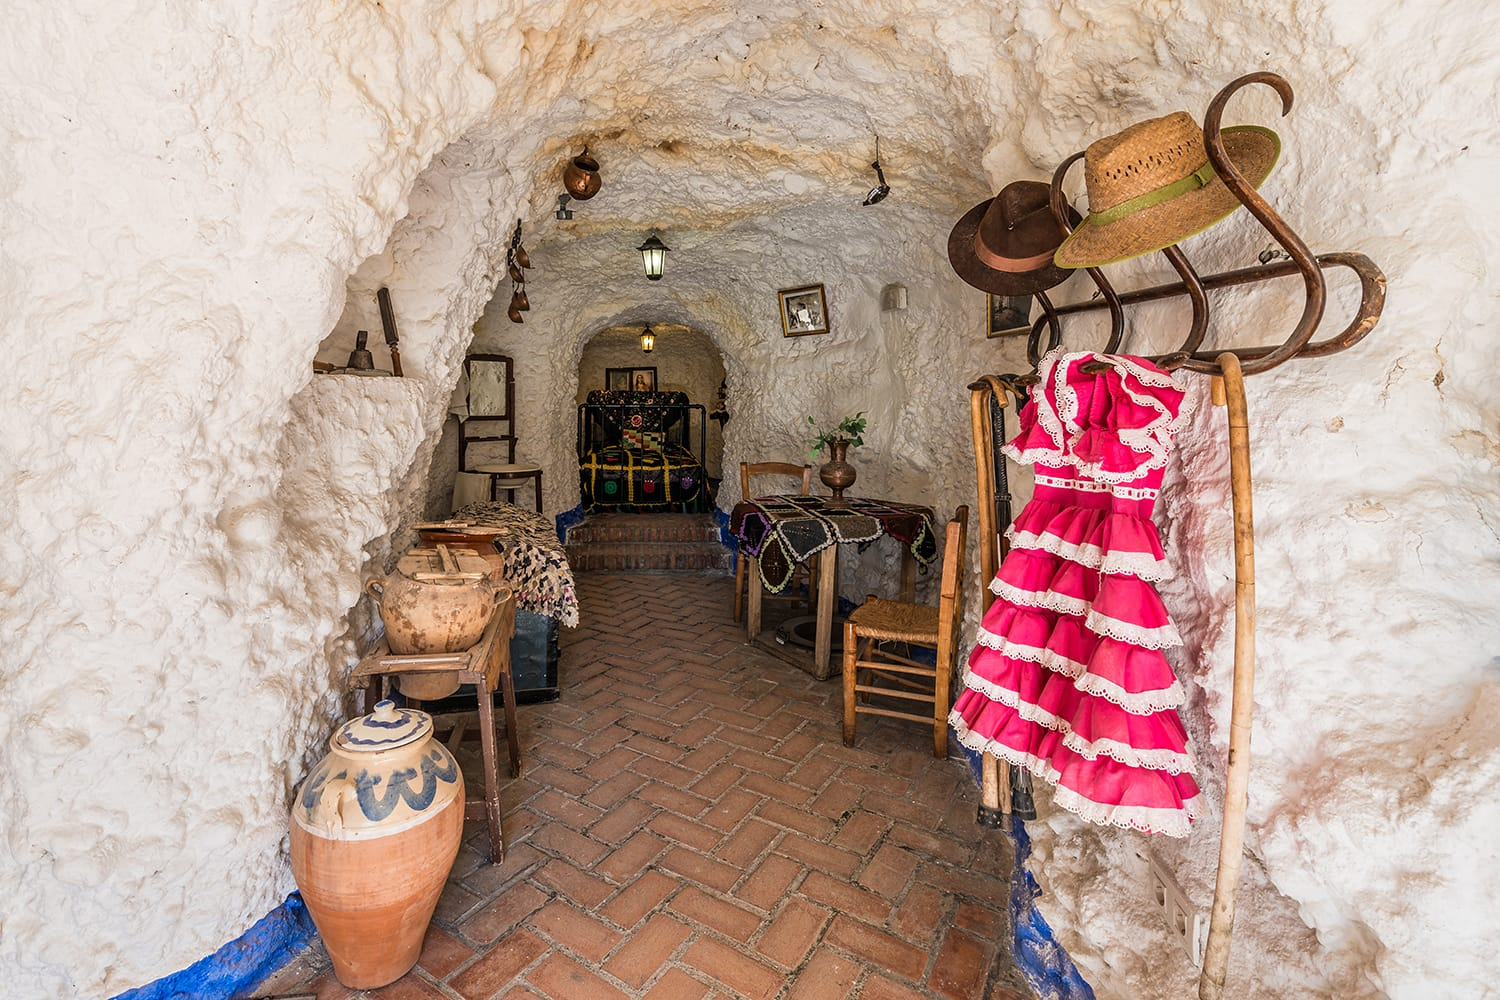 Museum and Interpretive Center Cuevas del Sacromonte in Granada, Andalusia, Spain